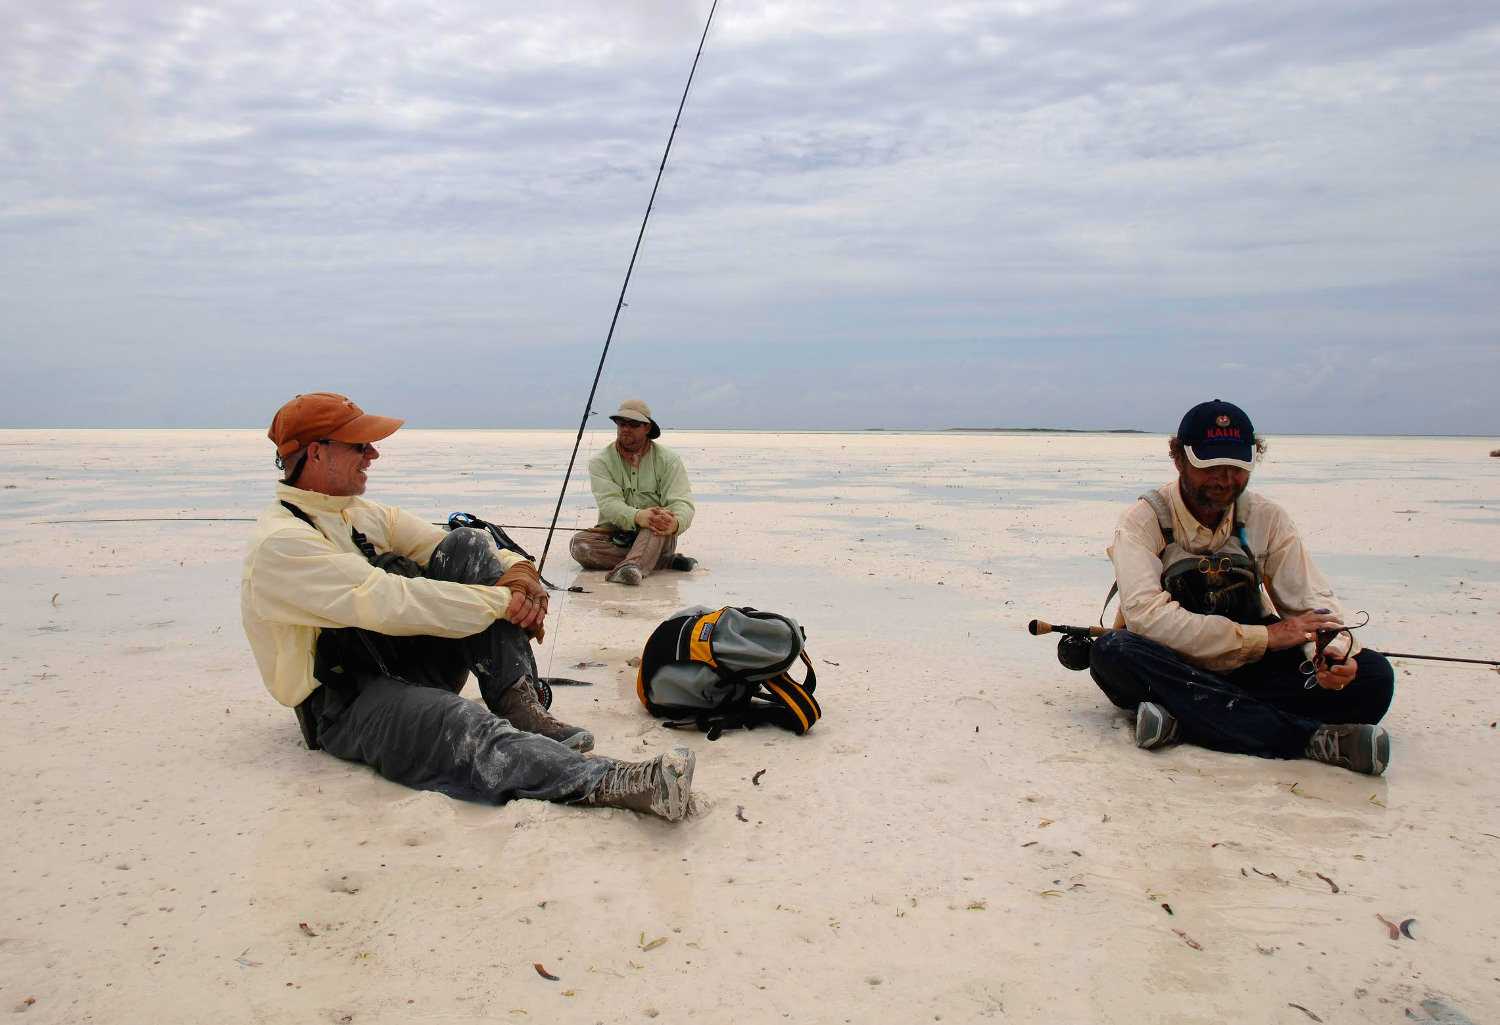 Fly fishing saltwater tides determine success toflyfish for Fly fishing podcast